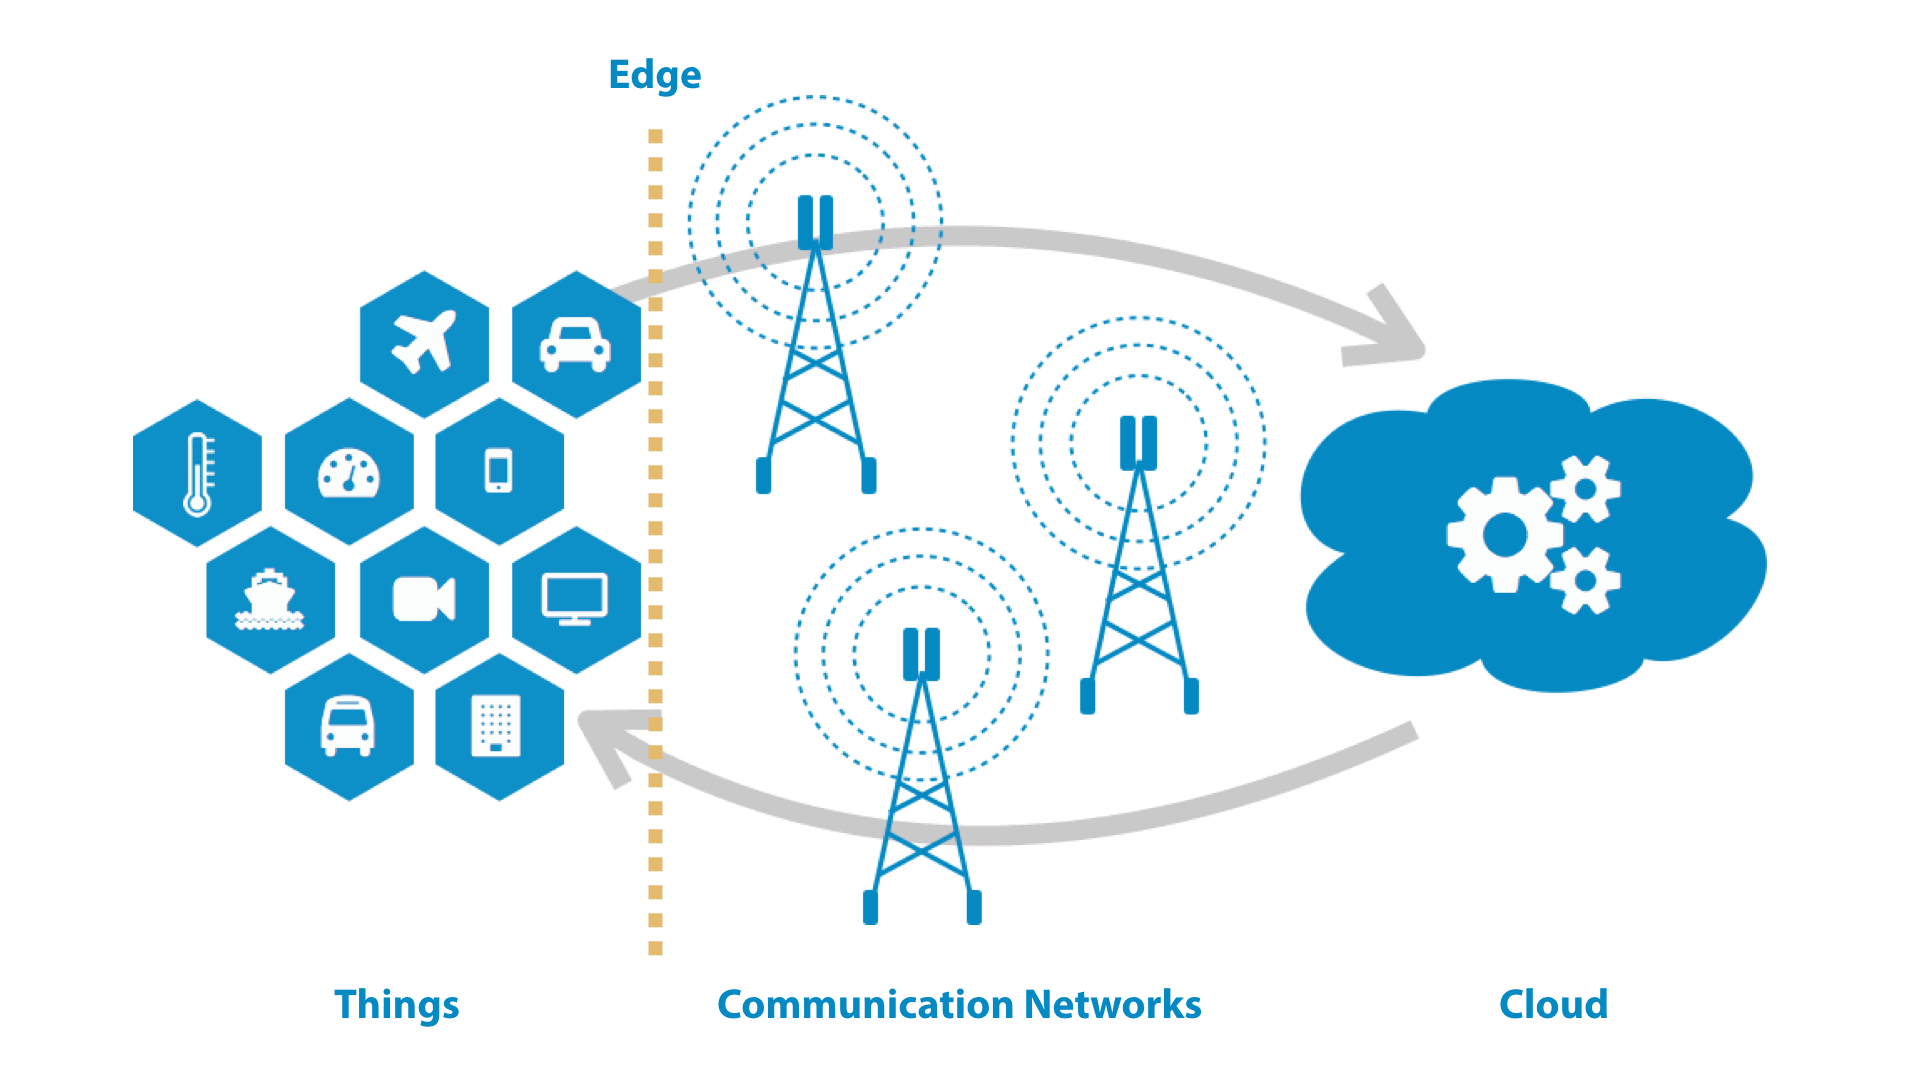 IoT: Edge Computing